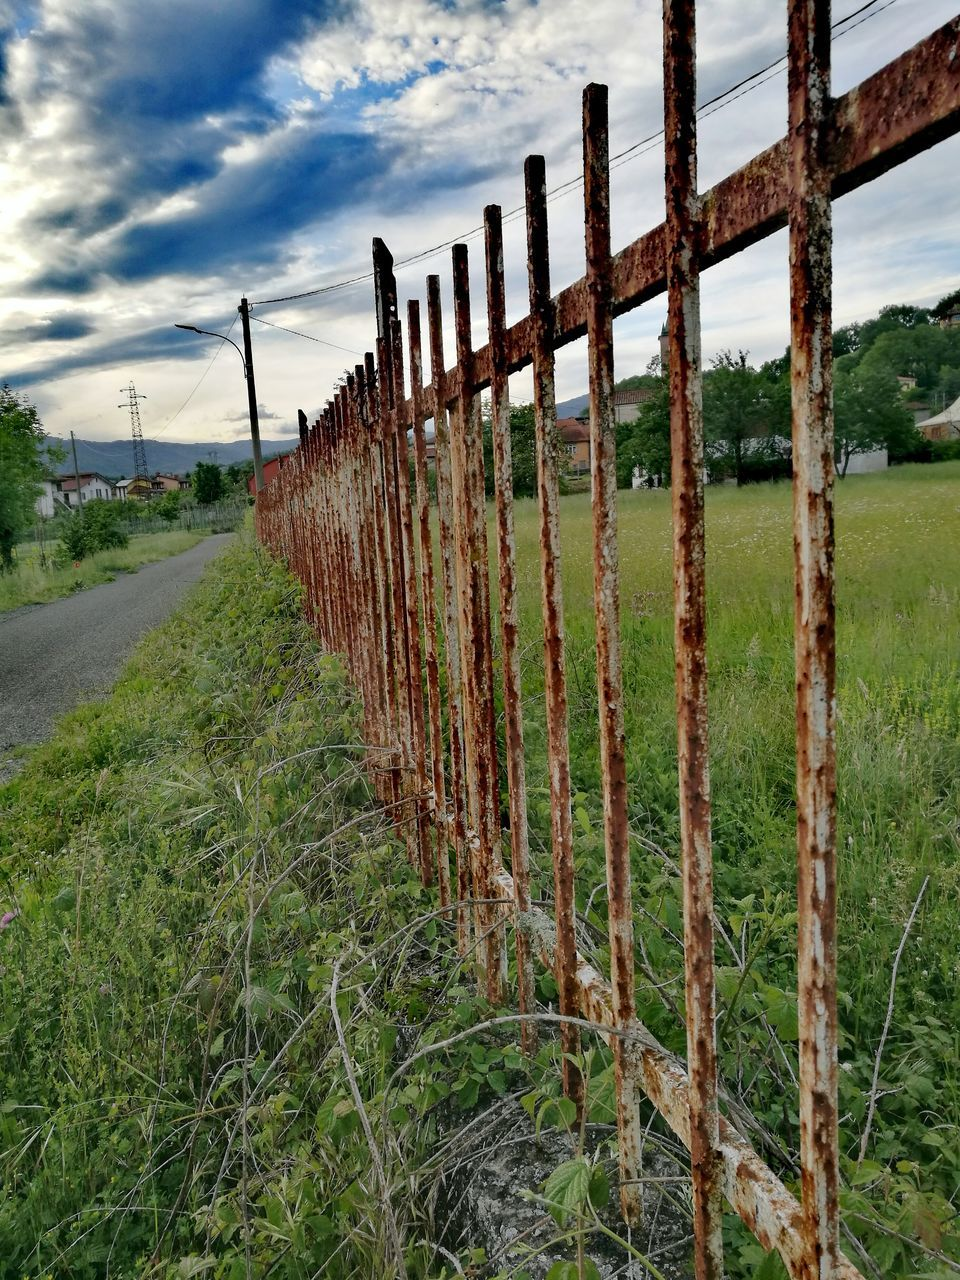 sky, grass, field, safety, cloud - sky, no people, day, barbed wire, outdoors, rural scene, wooden post, nature, growth